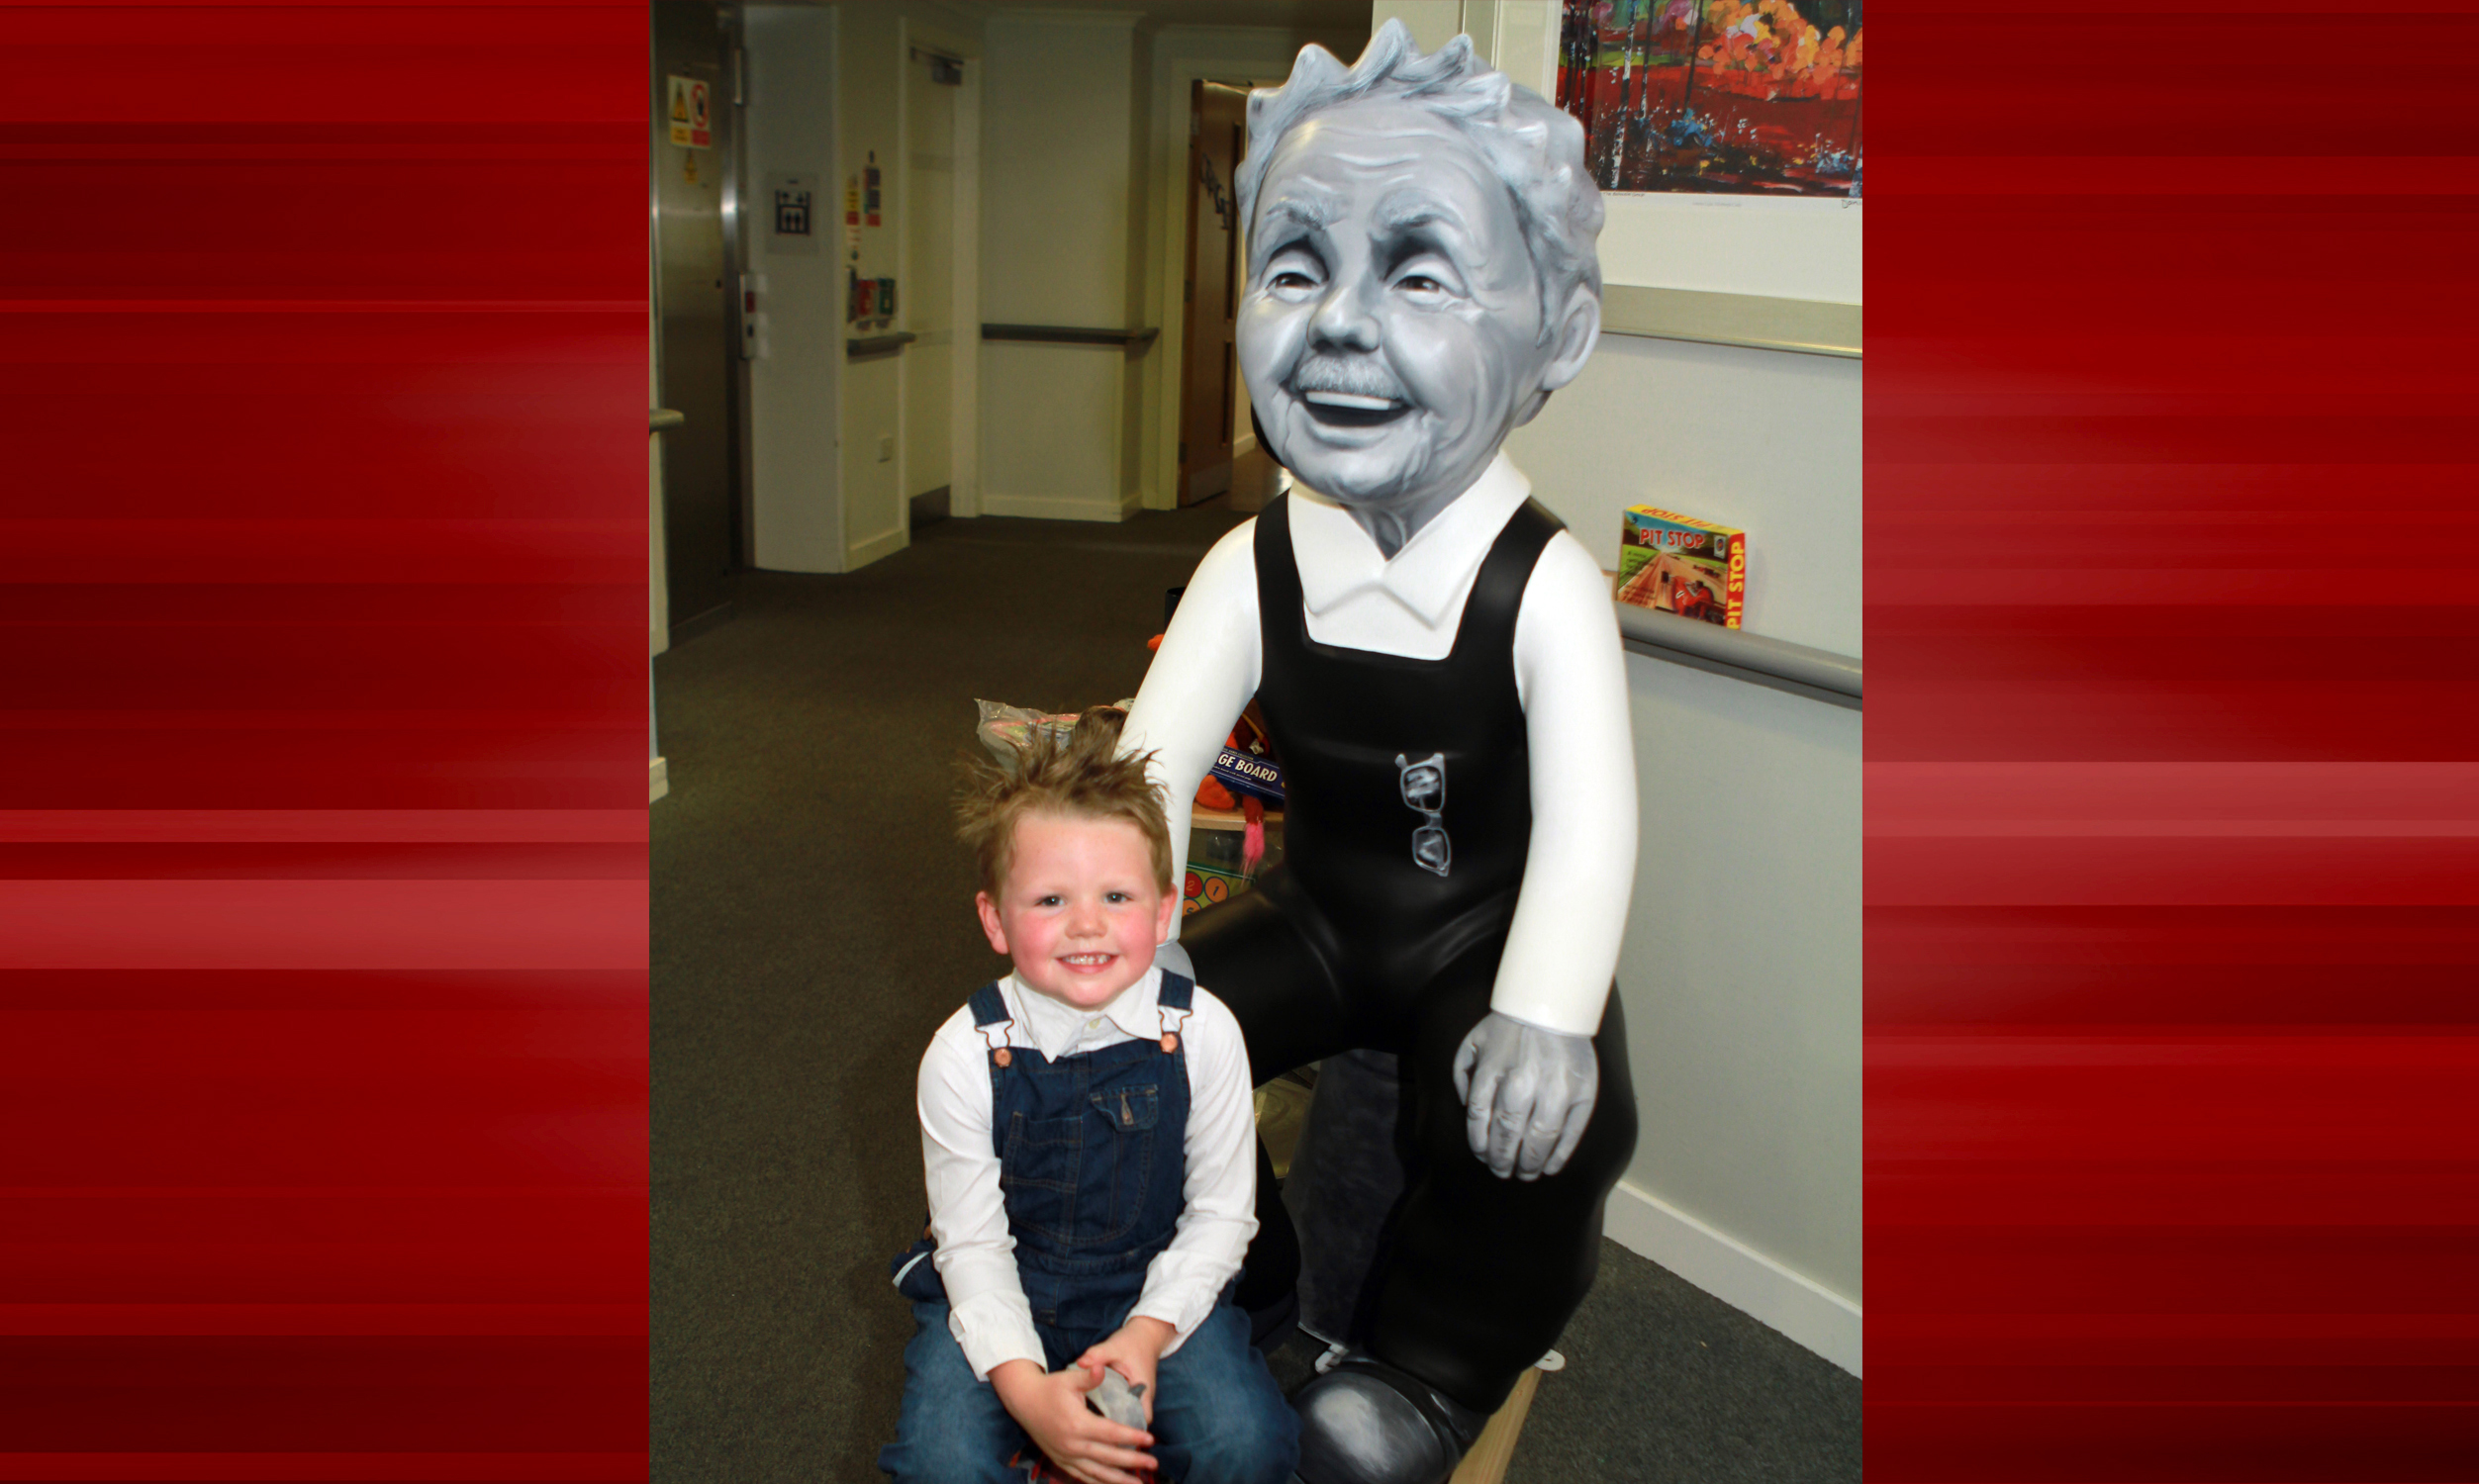 Five-year-old Lennon Grant was all smiles for a picture with Oor Wullie.